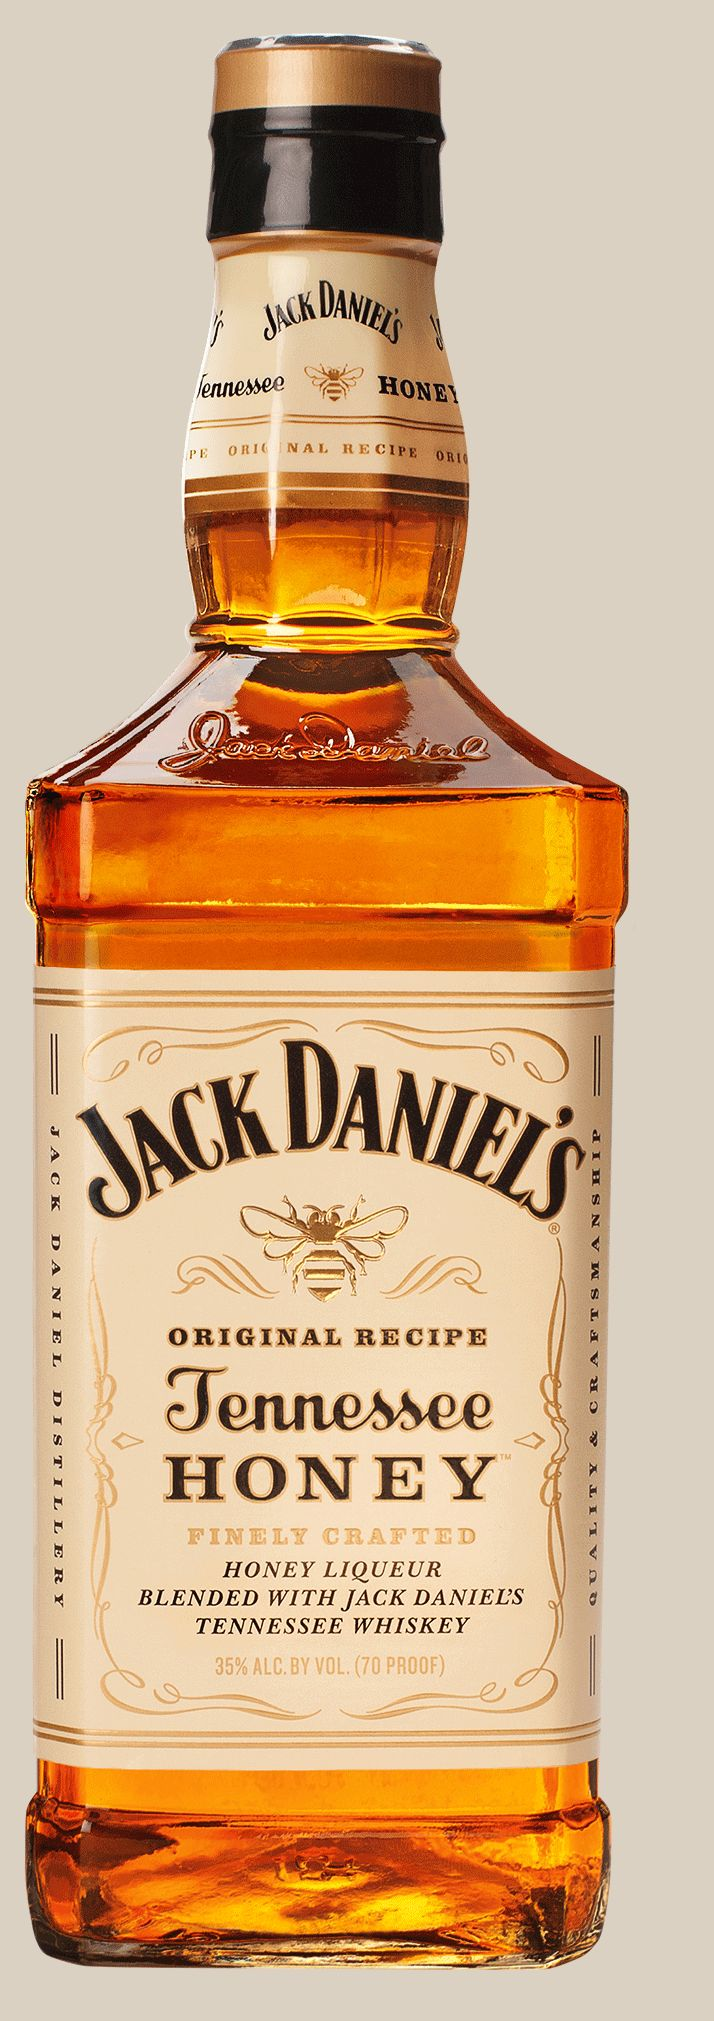 Tennessee Whiskey *Jack Daniel's Tennessee Honey* - Jack Daniel's, Tennessee, EE.UU.